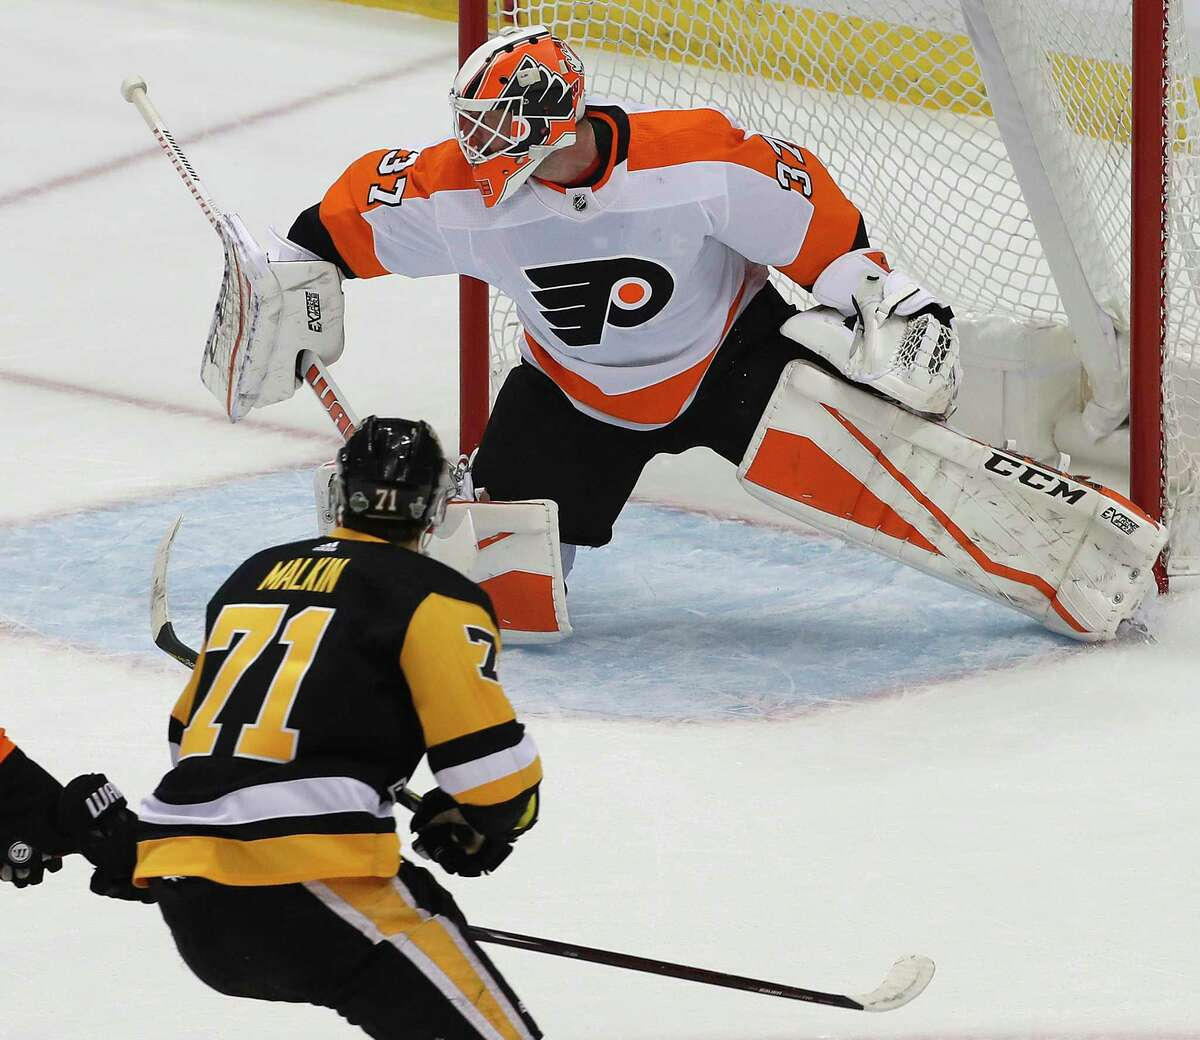 Pittsburgh Penguins' Evgeni Malkin (71) gets a shot behind Philadelphia Flyers goaltender Brian Elliott (37) for a goal during the first period in Game 1 of an NHL first-round hockey playoff series against the Philadelphia Flyers in Pittsburgh, Wednesday, April 11, 2018. (AP Photo/Gene J. Puskar)